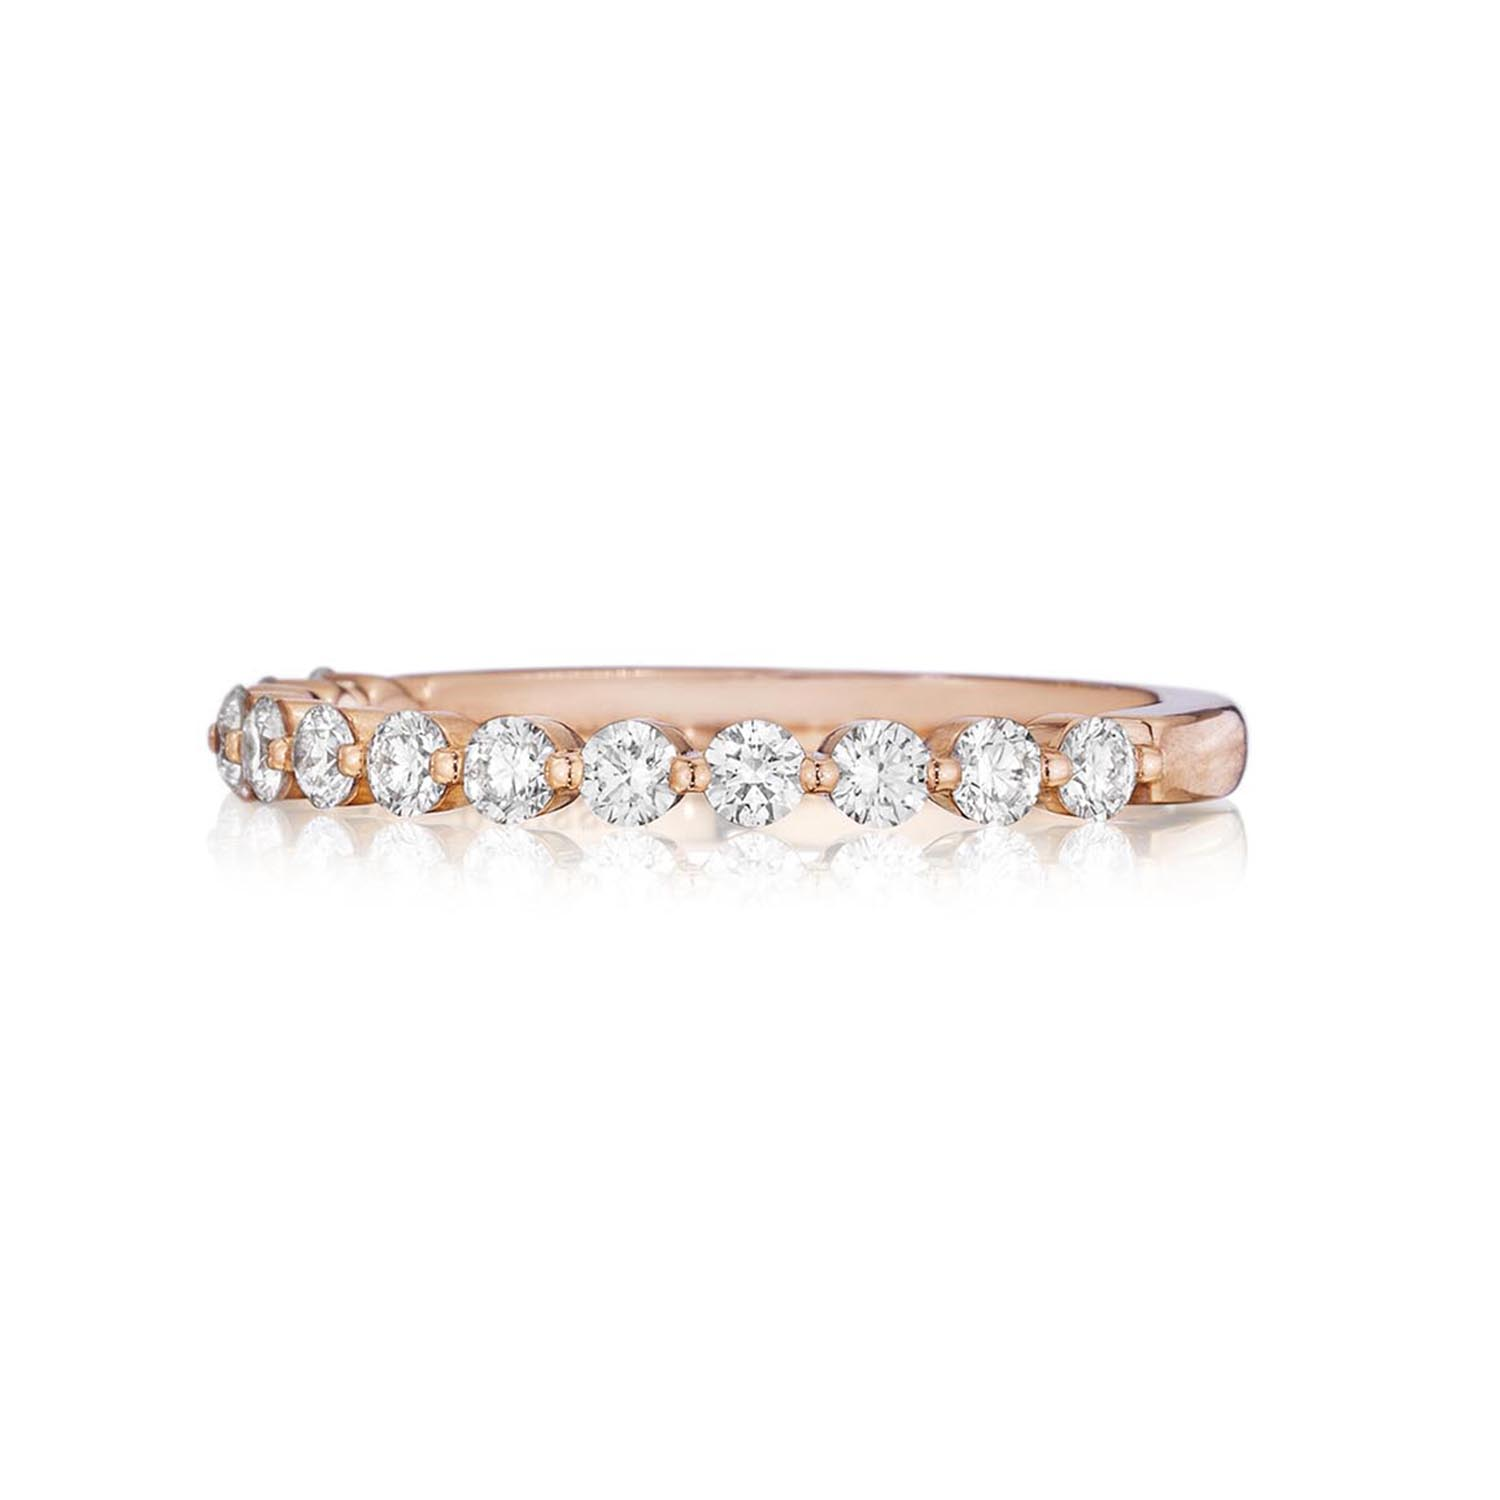 Henri Daussi 18 Karat Rose Gold Diamond Wedding Band